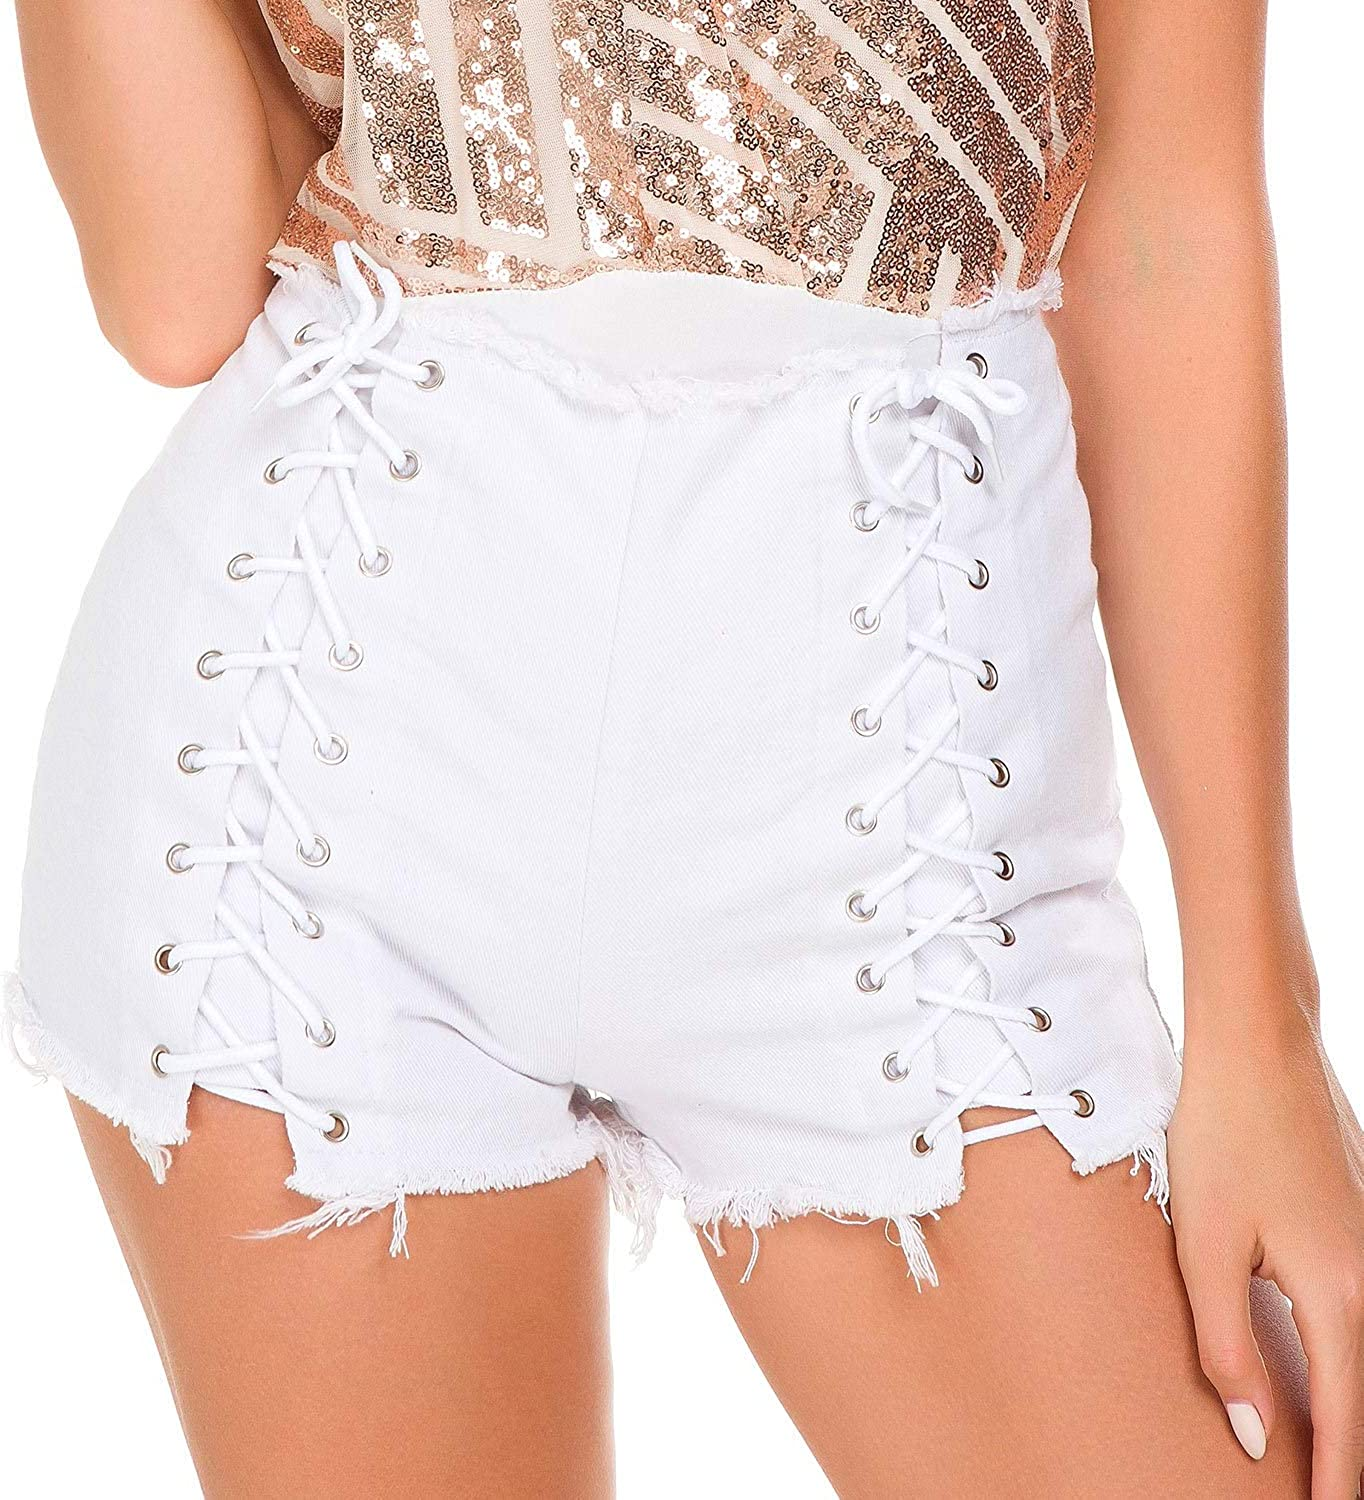 Summer Denim Shorts hot Pants Ultra Short Nightclub Women's Sexy high Waist Hole Black lace (color   White, Size   S)